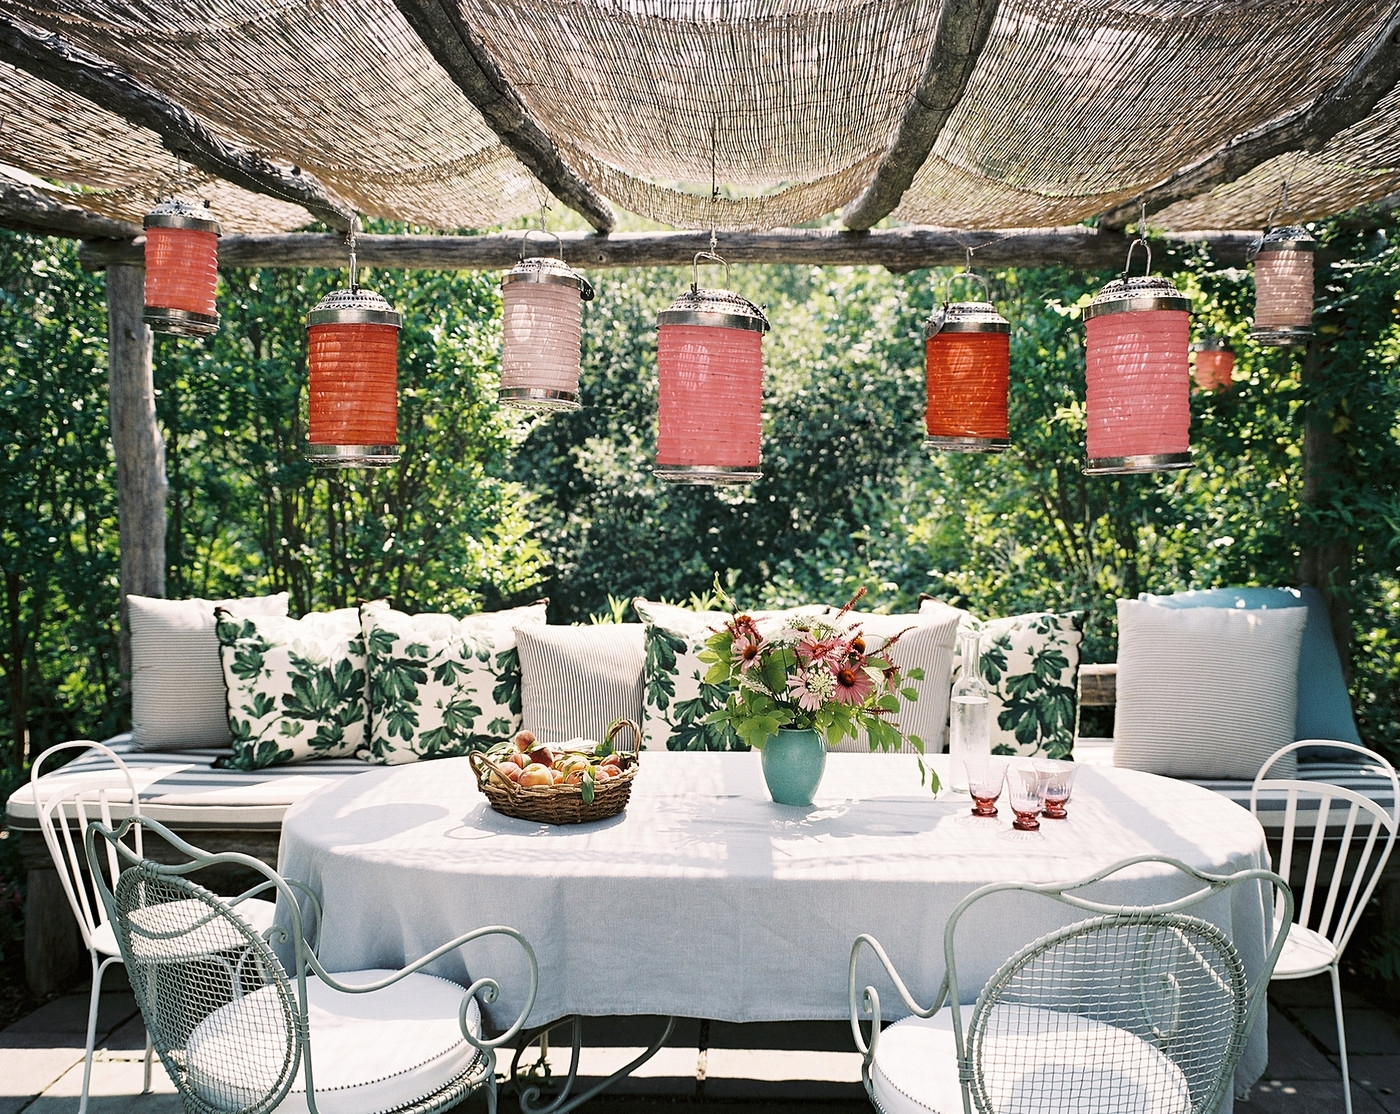 Fashionable Decoration : White Paper Lanterns Bulk Nylon Lanterns With Lights Inside Outdoor Hanging Nylon Lanterns (View 6 of 20)